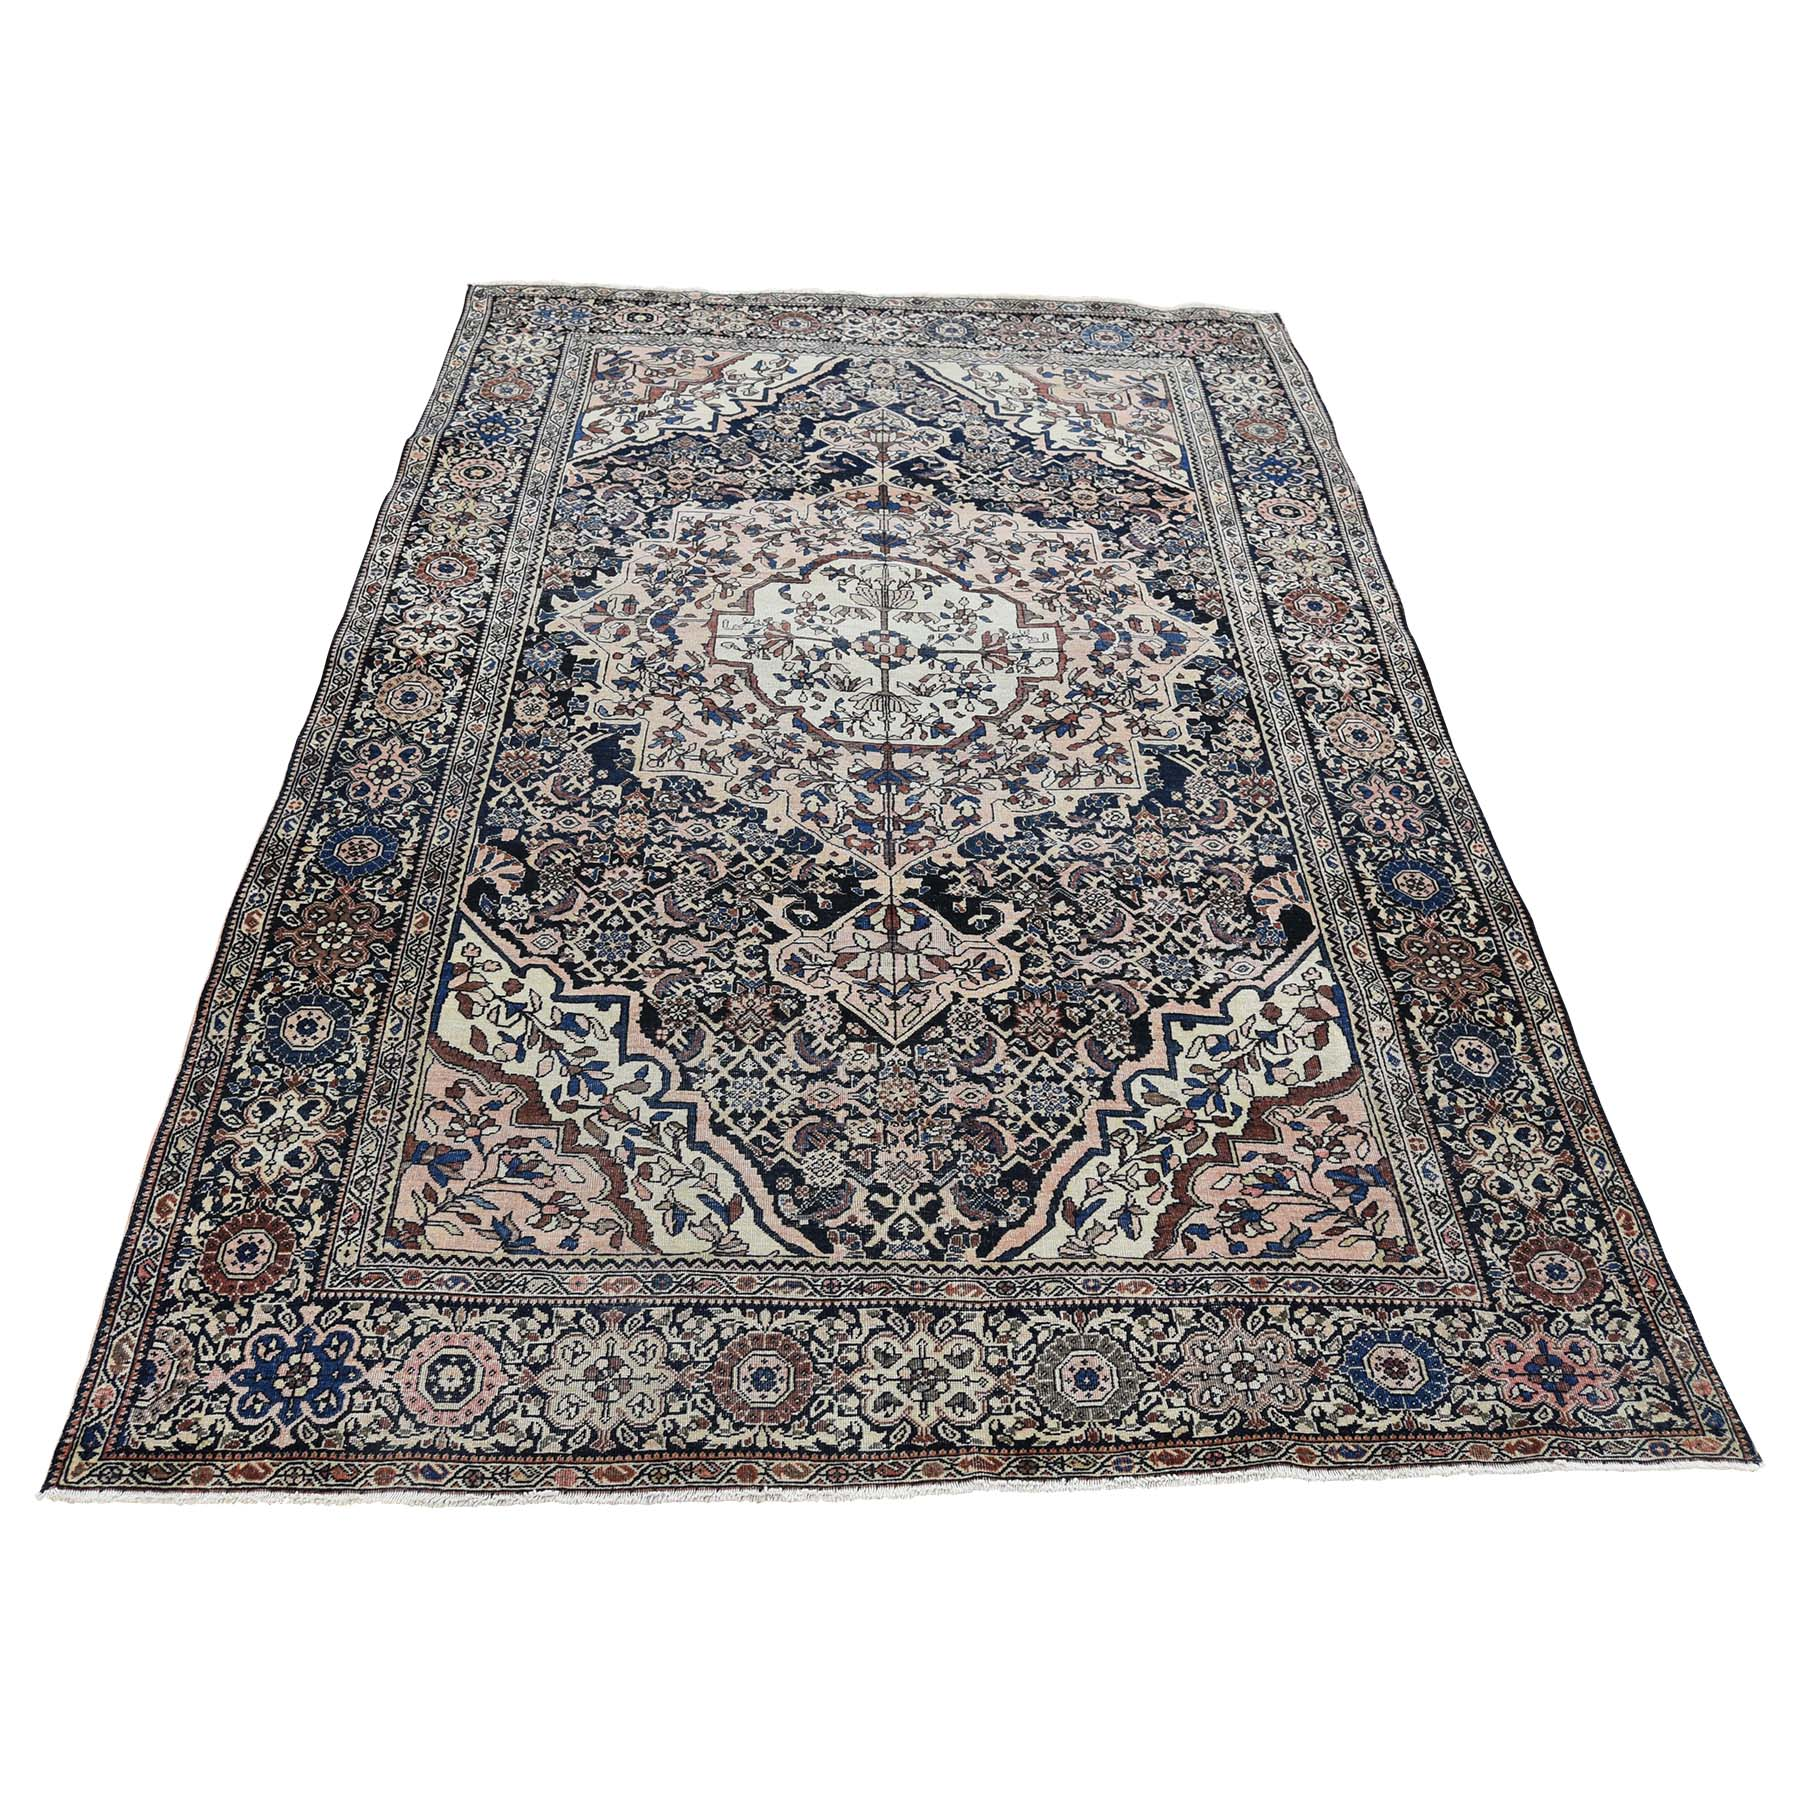 4'x6'3'' Antique Persian Fereghan Sarouk Dense Weave Even Wear Hand-Knotted Rug